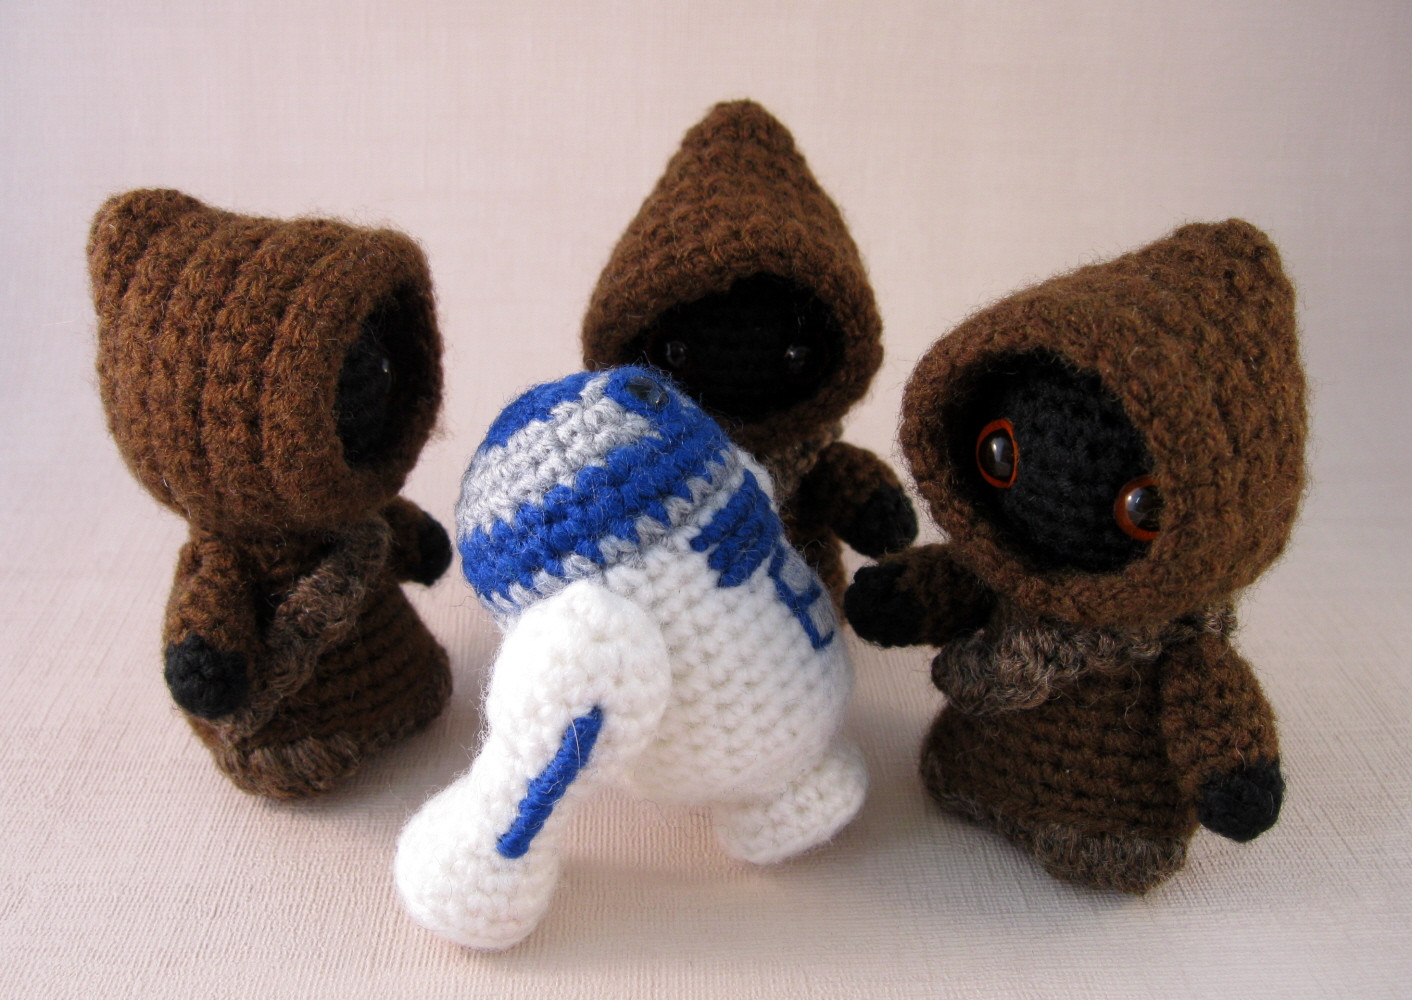 Star Wars Crochet Patterns Free Awesome Lucyravenscar Crochet Creatures Utini It S A New Jawa Of Marvelous 49 Photos Star Wars Crochet Patterns Free